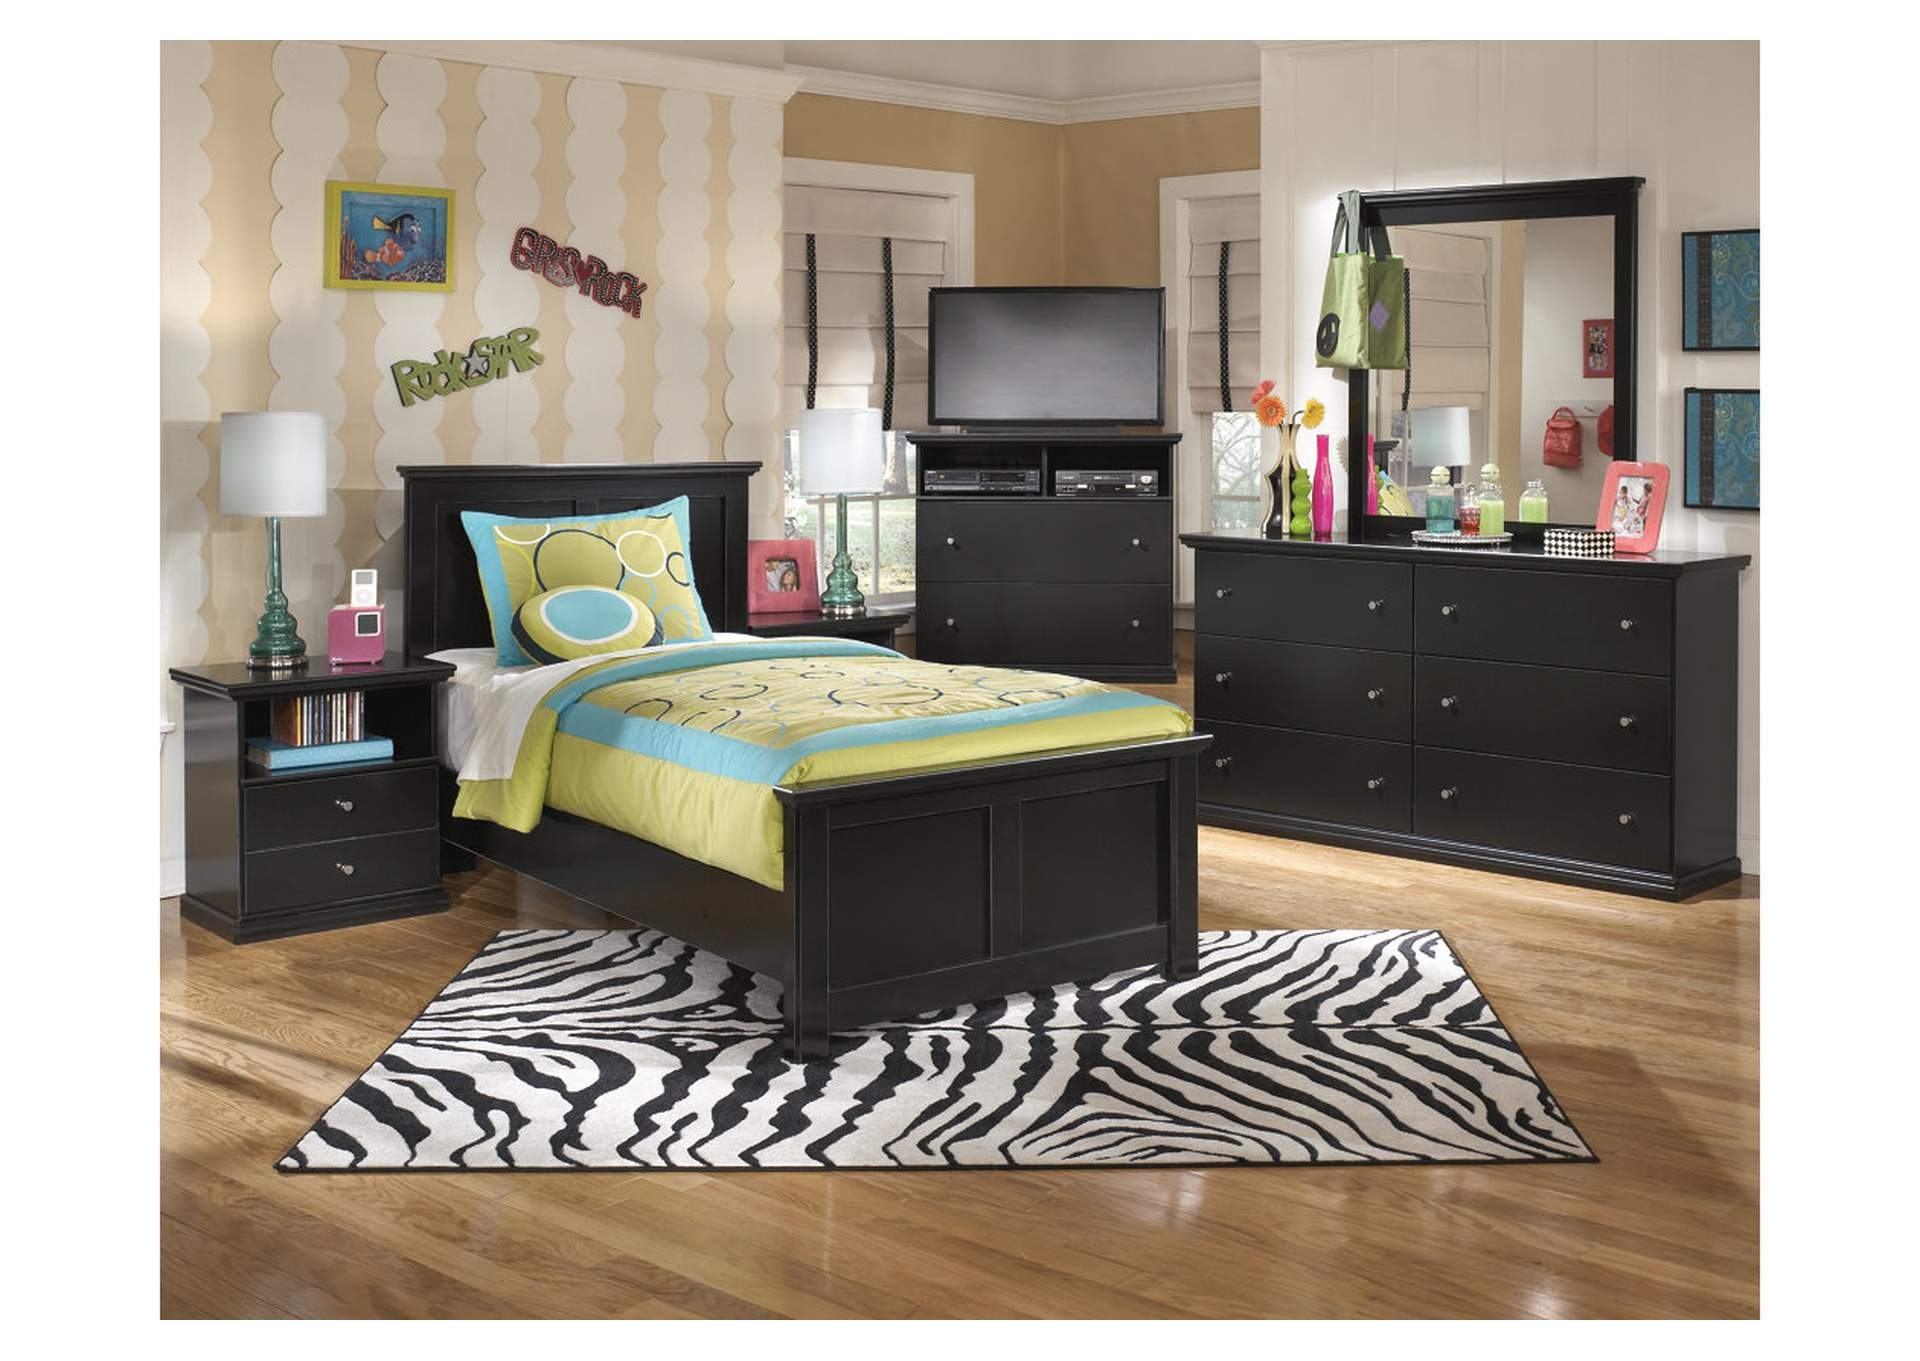 Maribel Full Panel Bed w/Dresser, Mirror, Drawer Chest & 2 Nightstands,Signature Design By Ashley